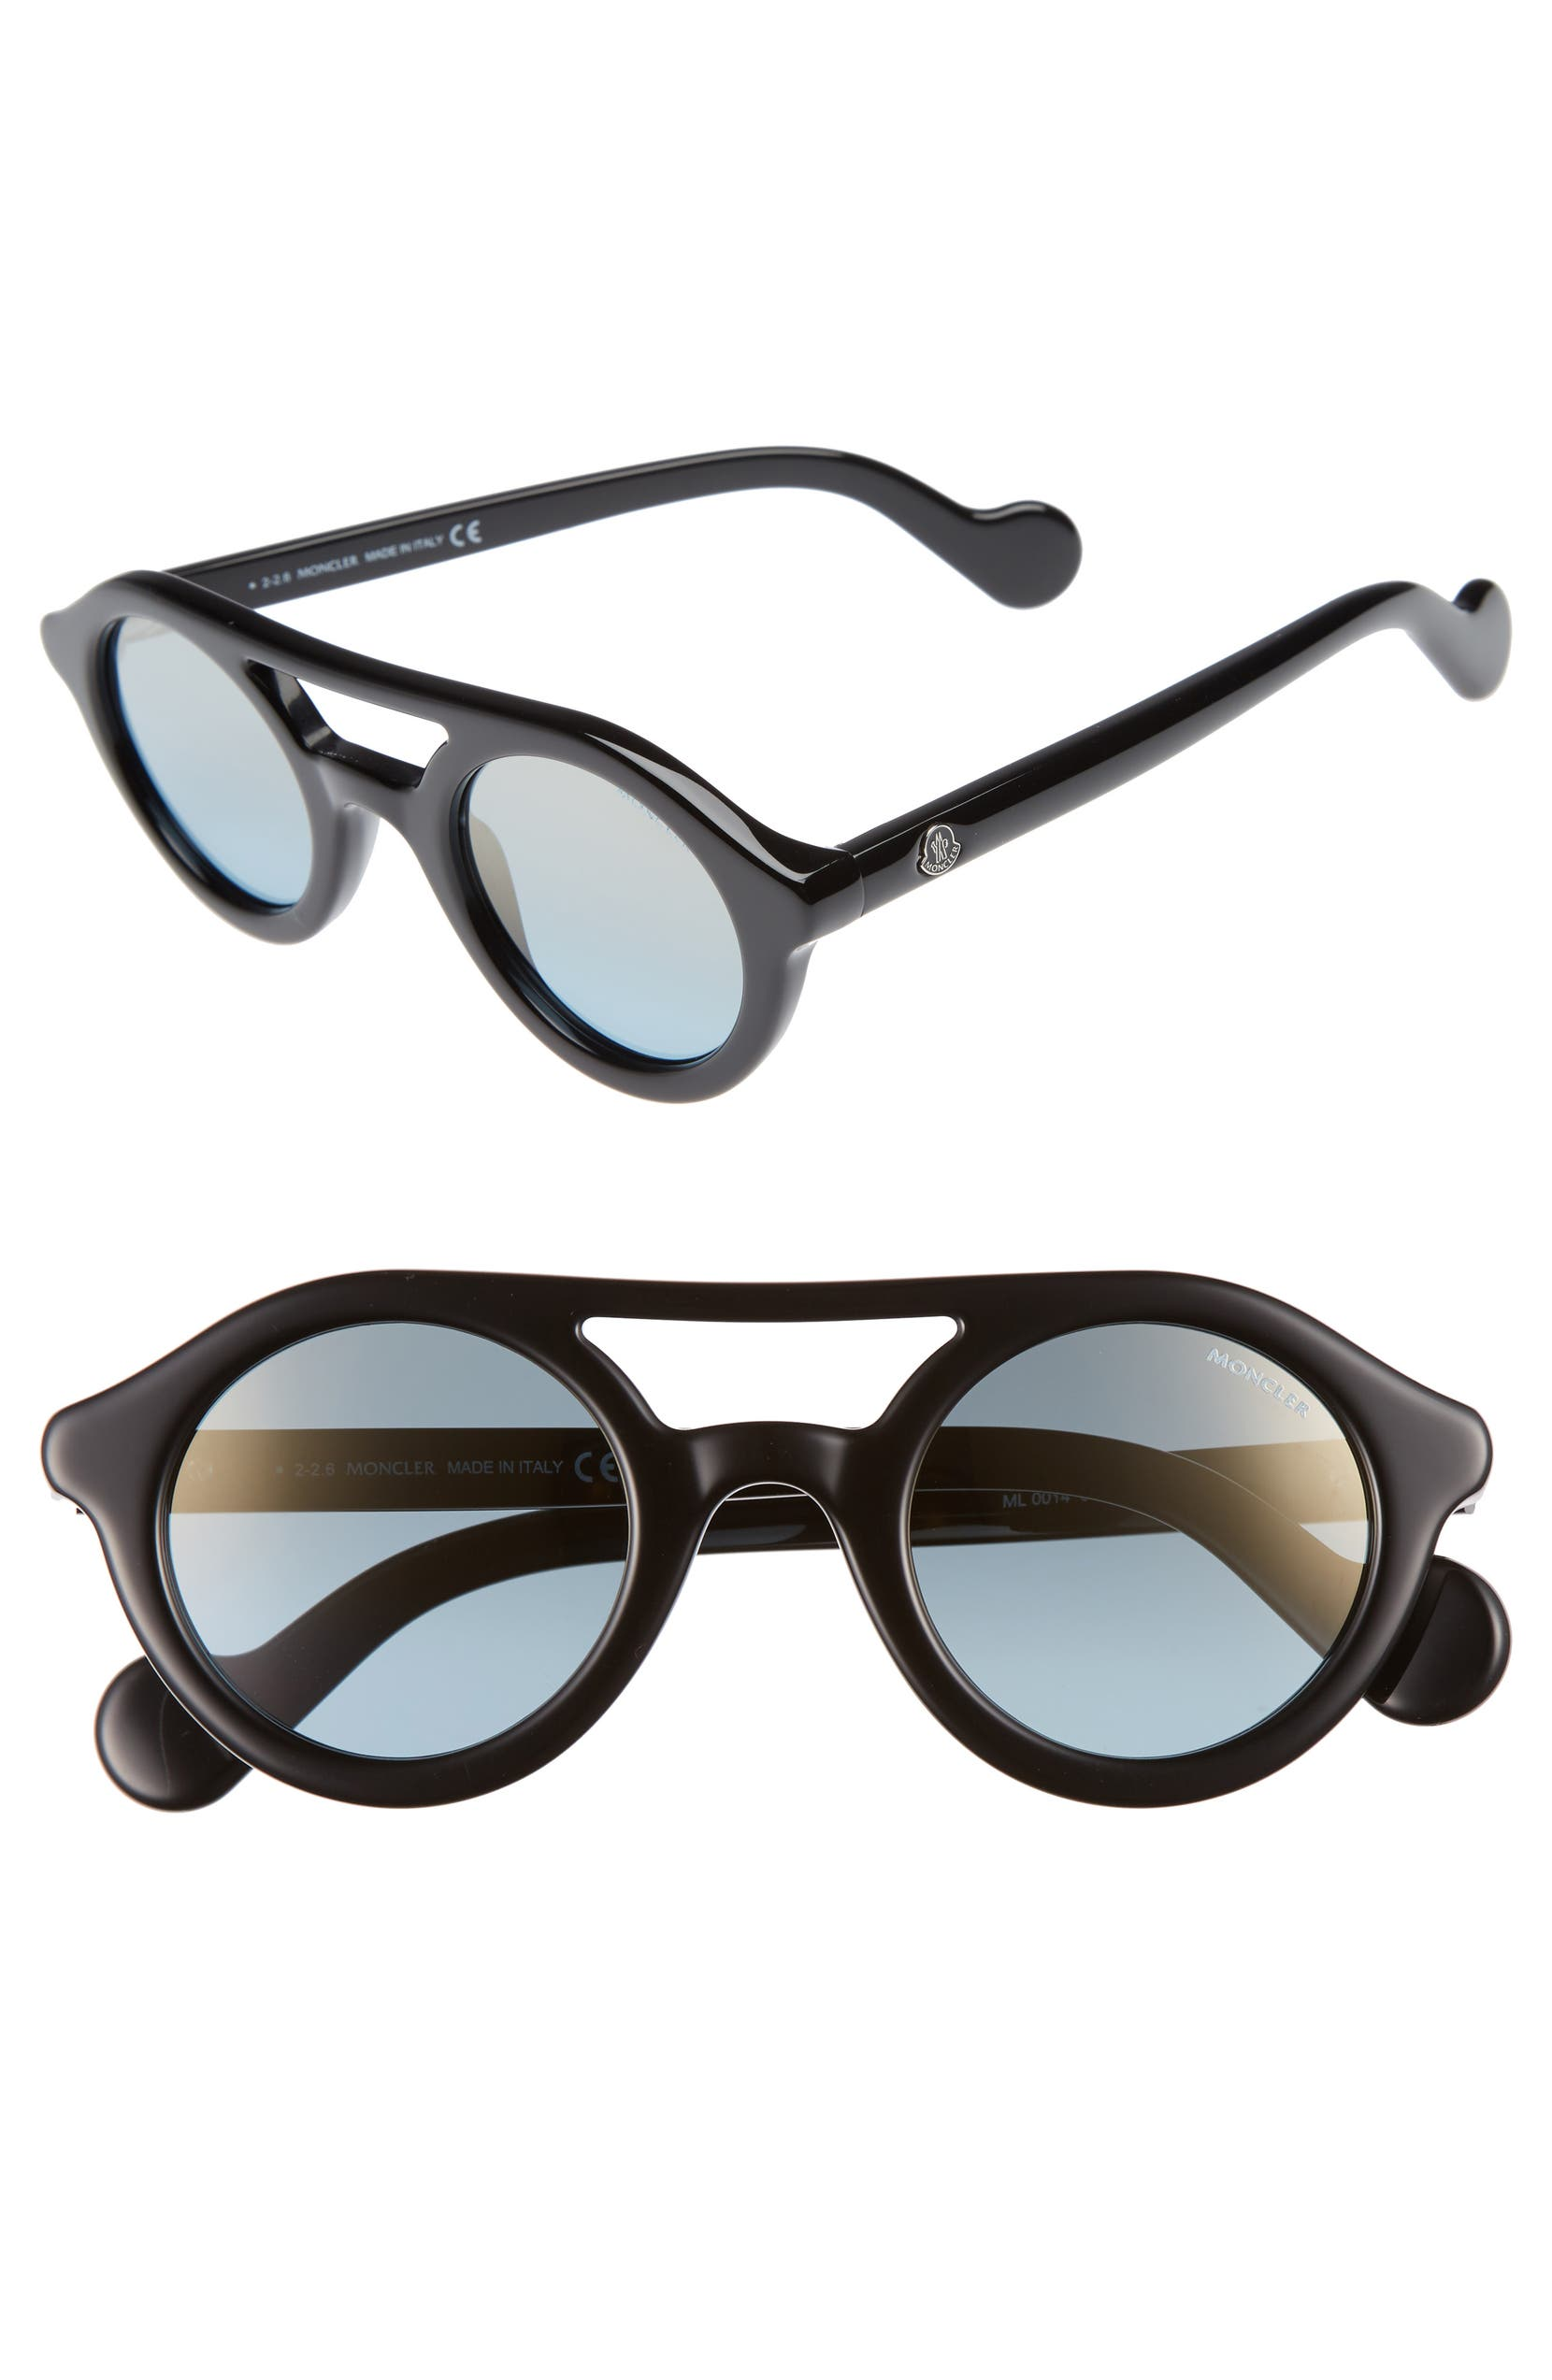 dc954b36c70 Moncler 47mm Rounded Sunglasses